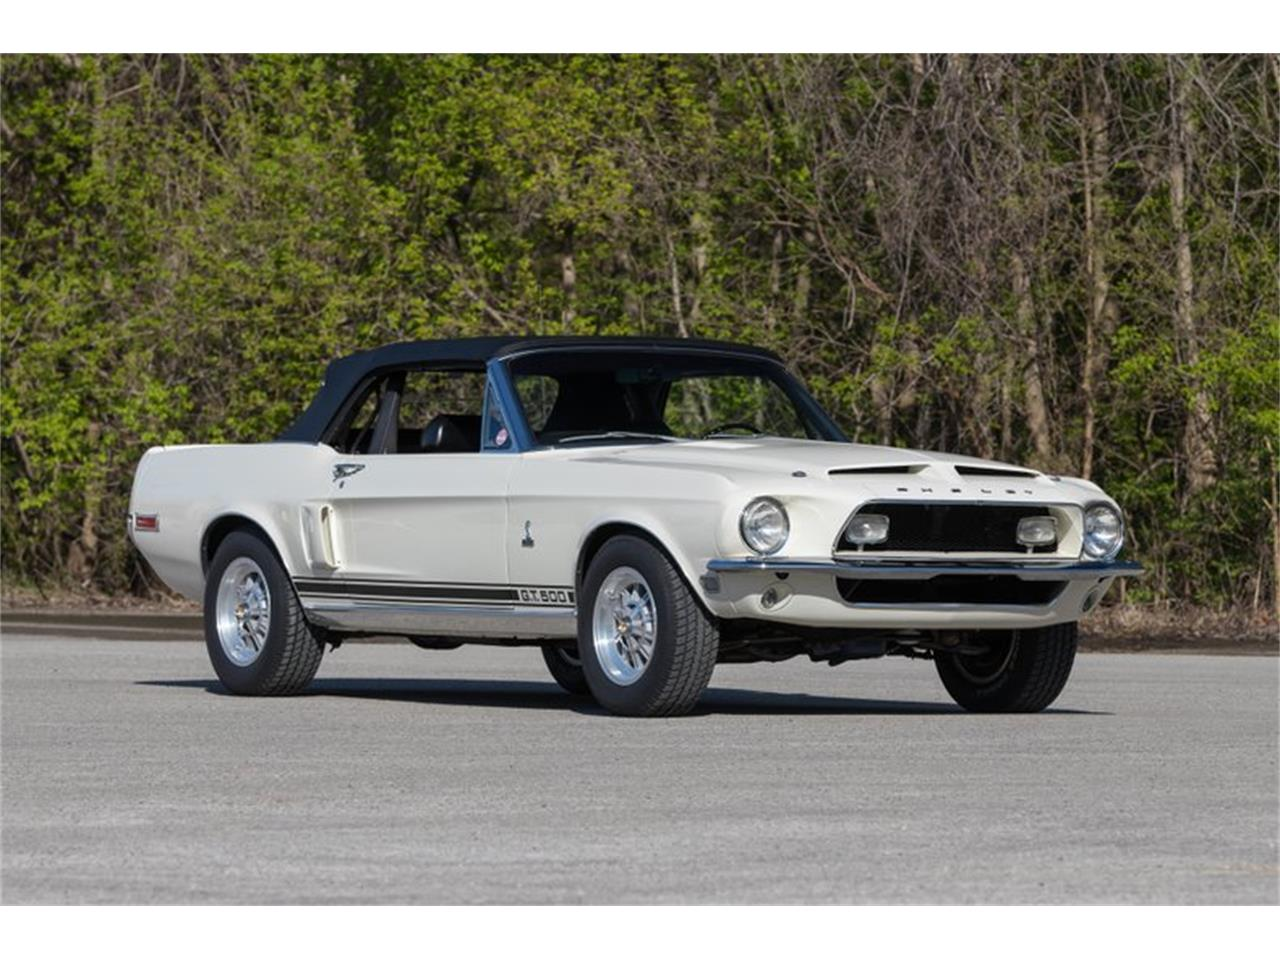 Large Picture of '68 GT500 located in St. Charles Missouri - $157,500.00 Offered by Fast Lane Classic Cars Inc. - PWHW